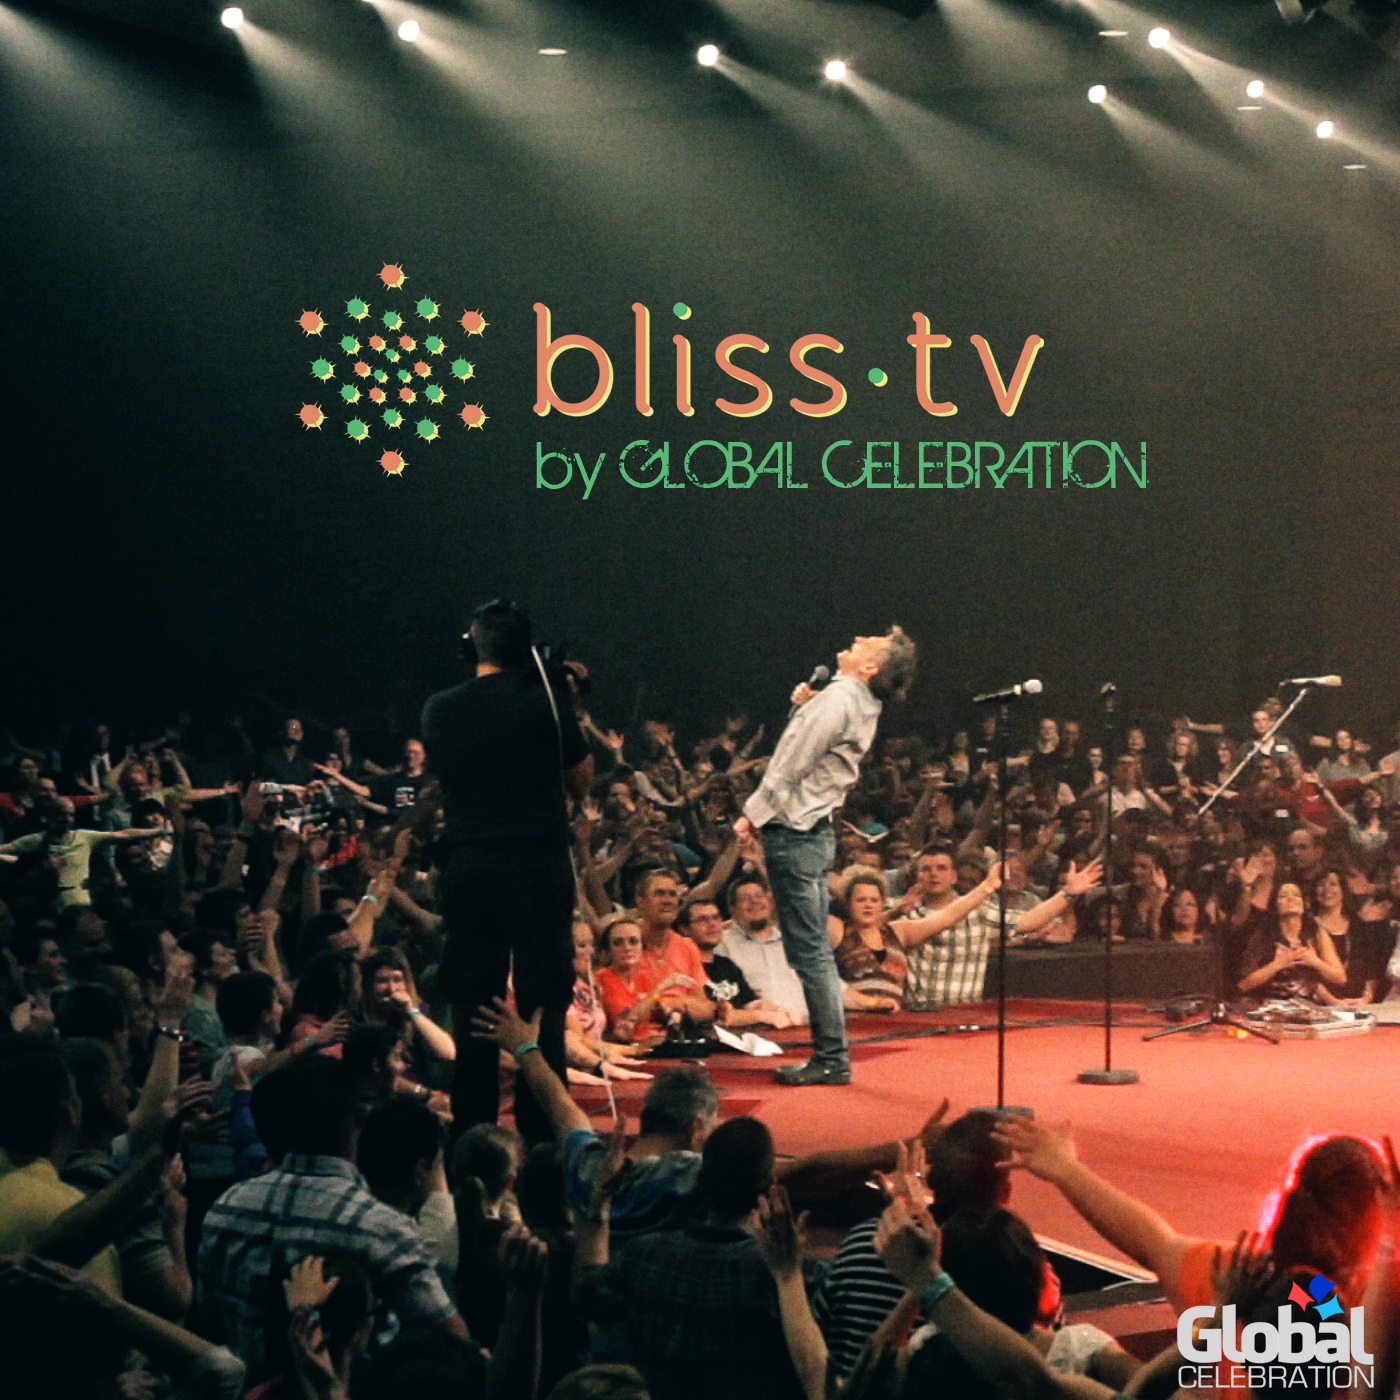 GLOBAL CELEBRATION: BLISS TV